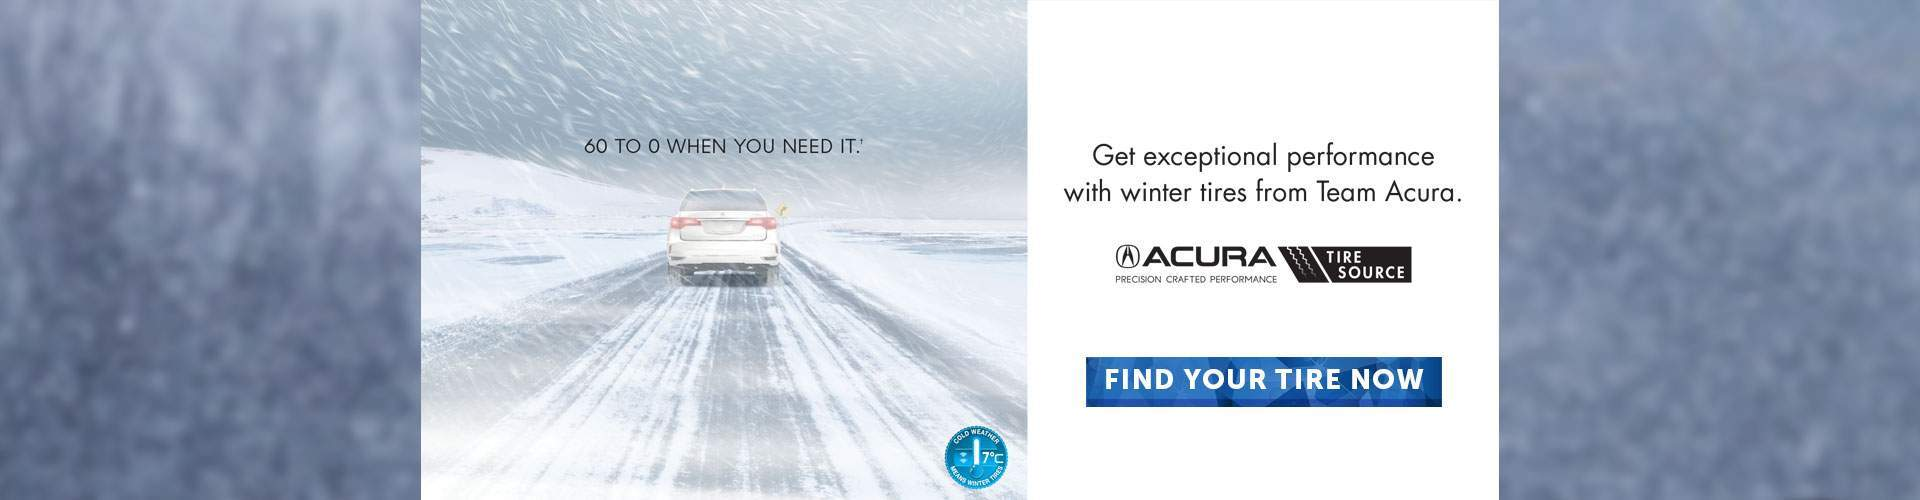 Acura WInter Tires